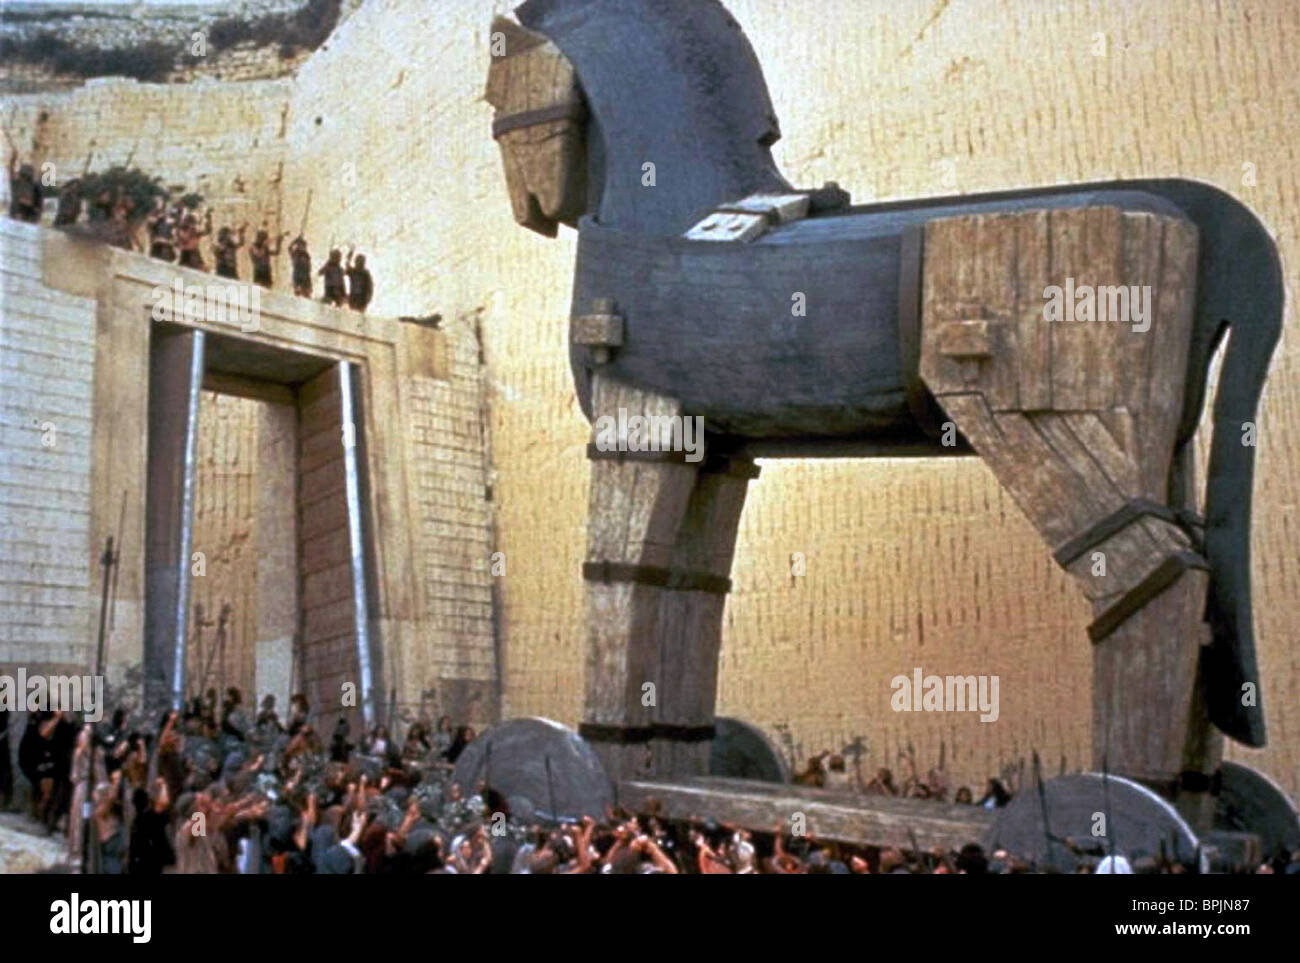 TROJAN HORSE THE ODYSSEY (1997) - Stock Image